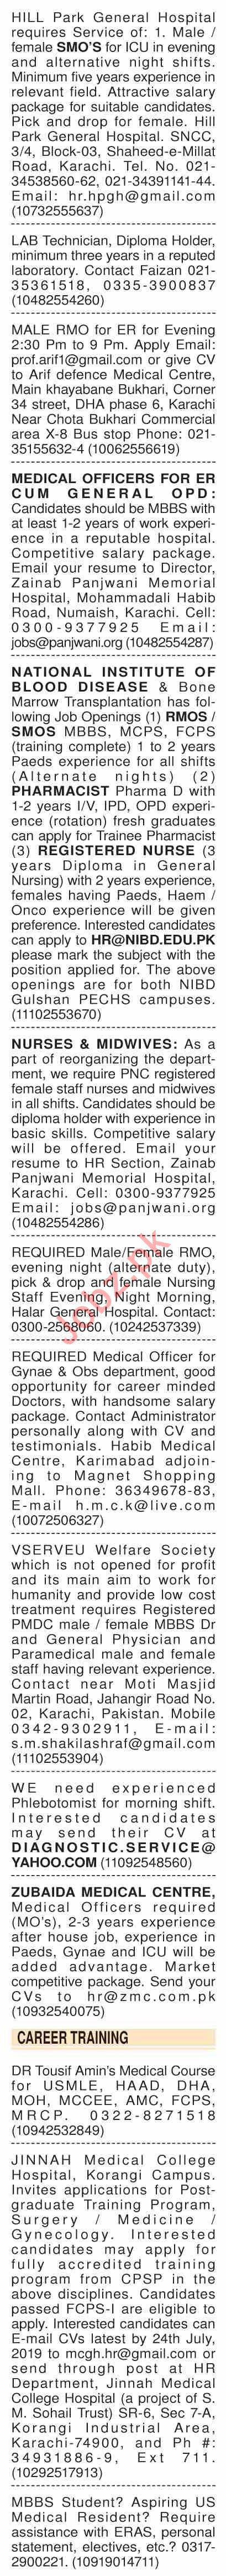 Dawn Sunday Classified Ads 21st July 2019 for Medical Staff